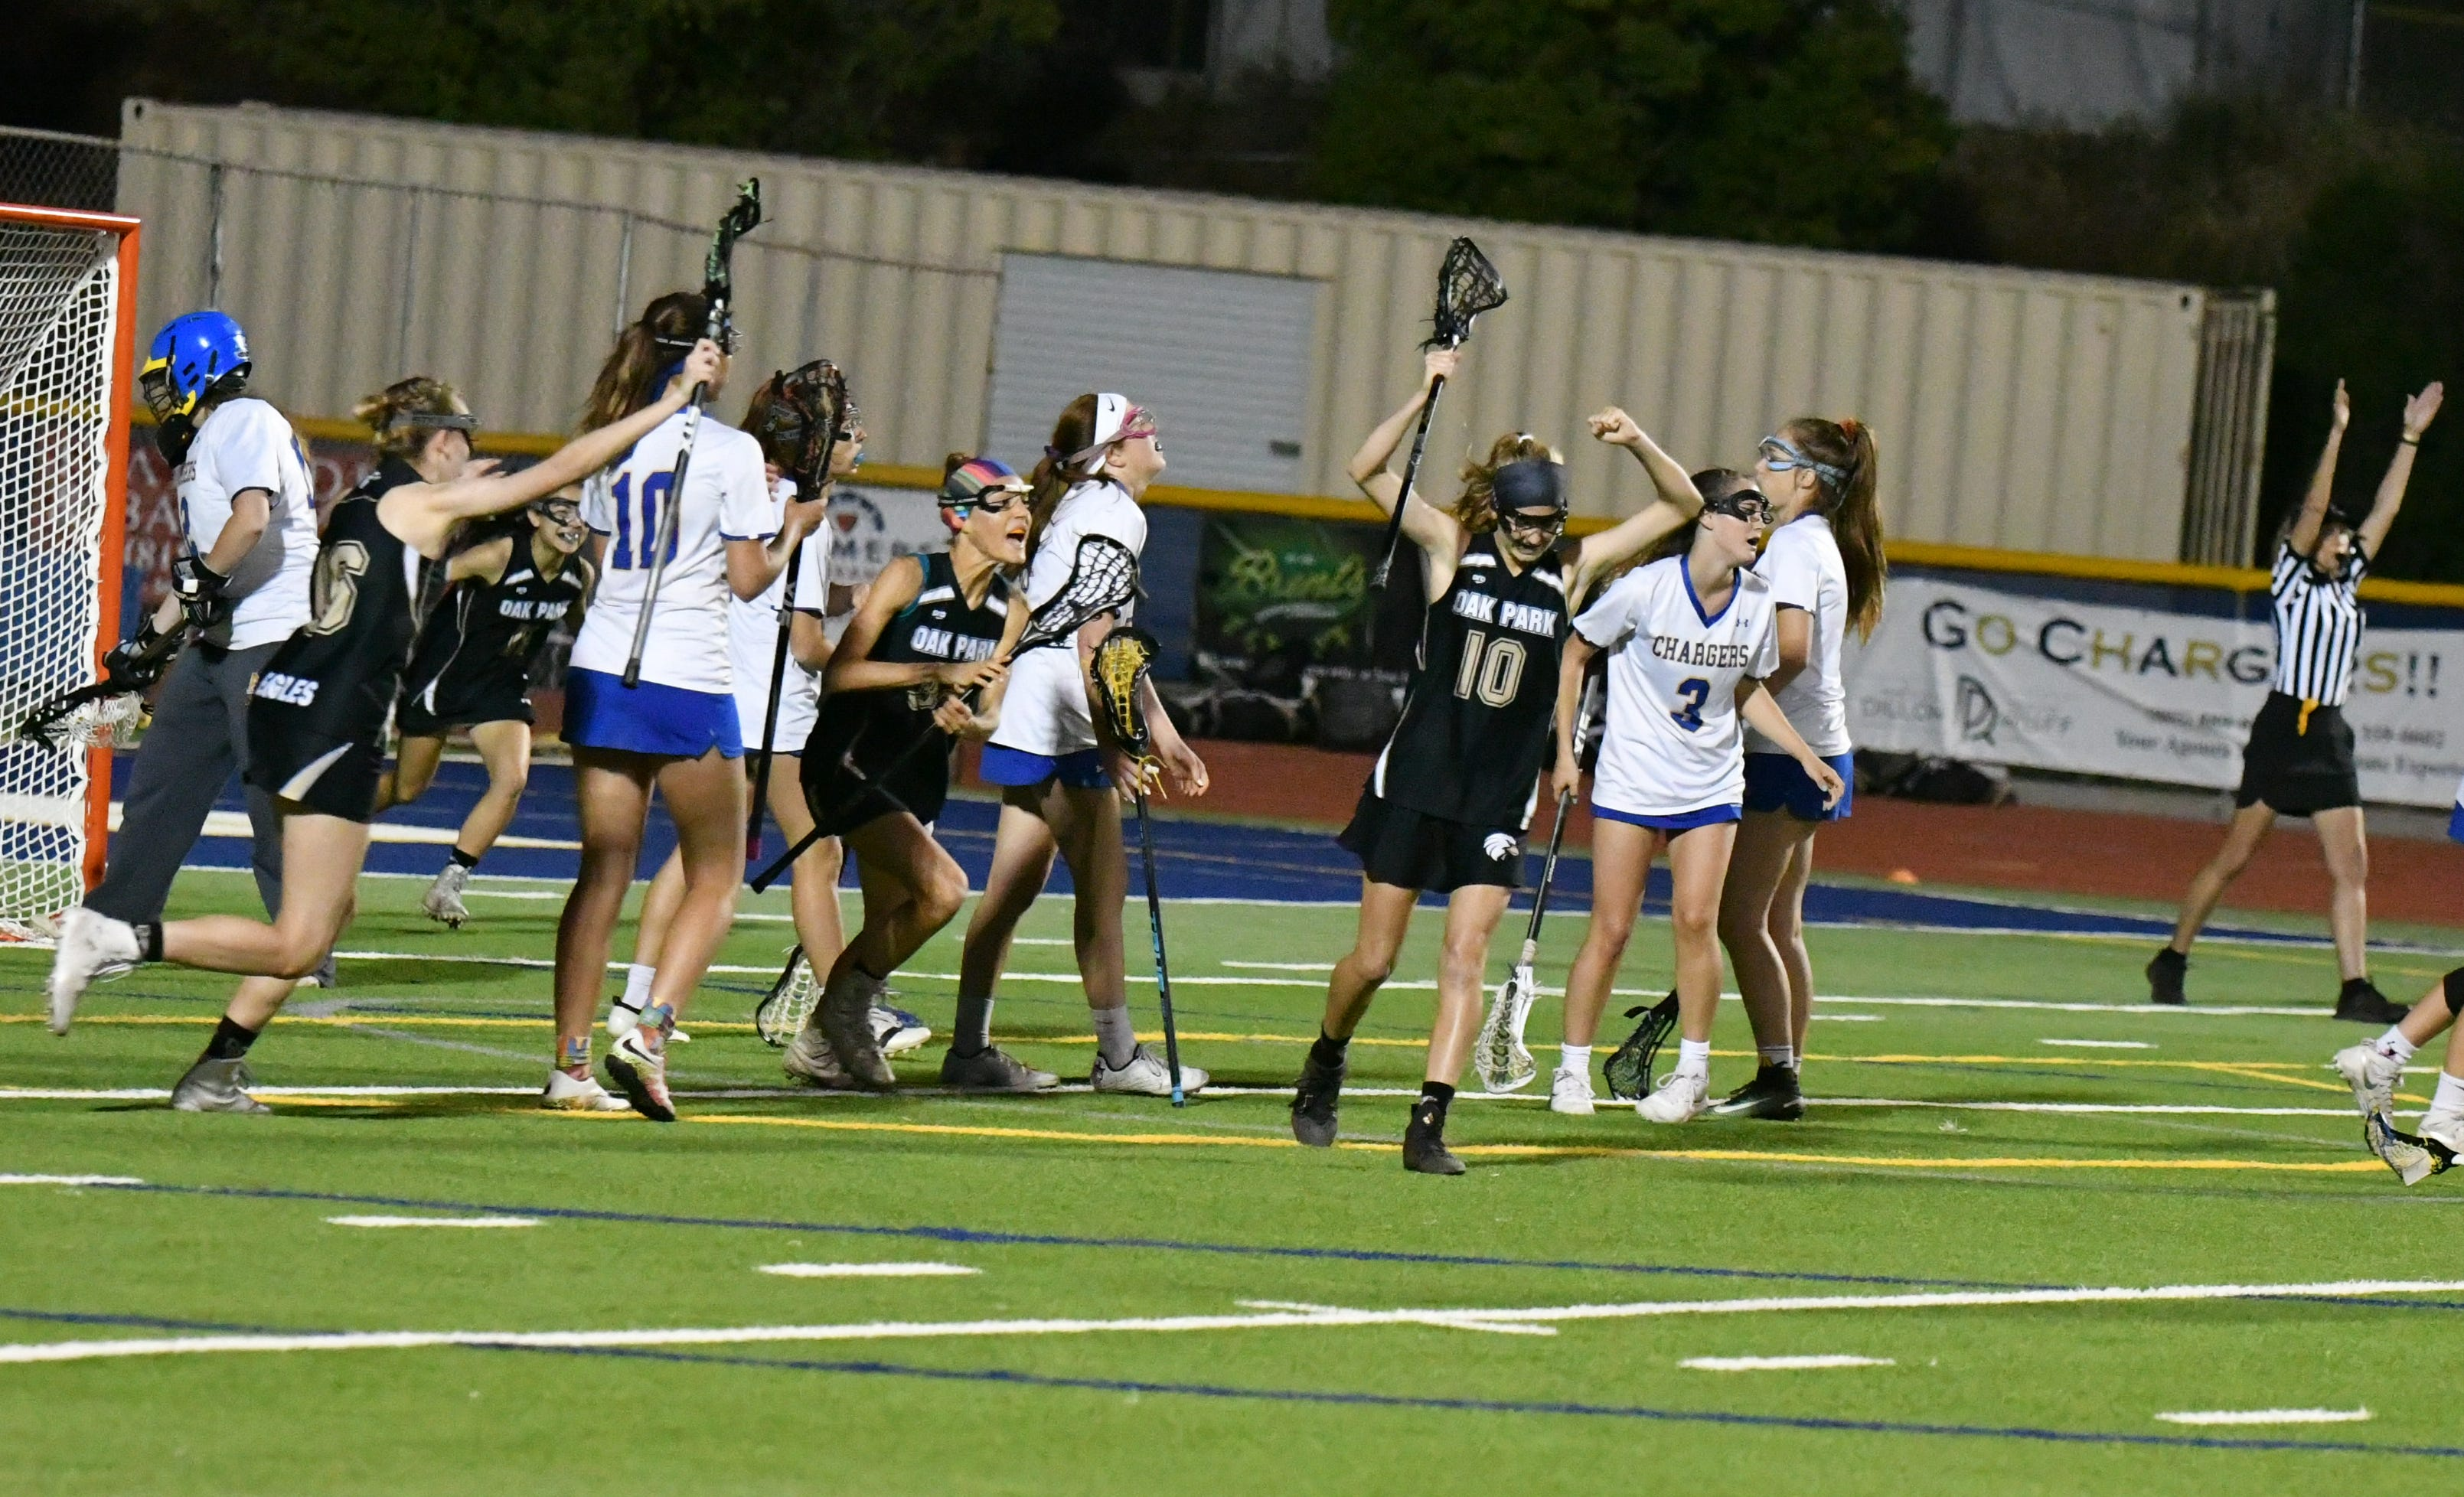 Oak Park senior Erin Dotson, center, celebrates scoring the winning goal with three seconds in overtime of the inaugural Coastal Canyon League girls lacrosse championship tournament.